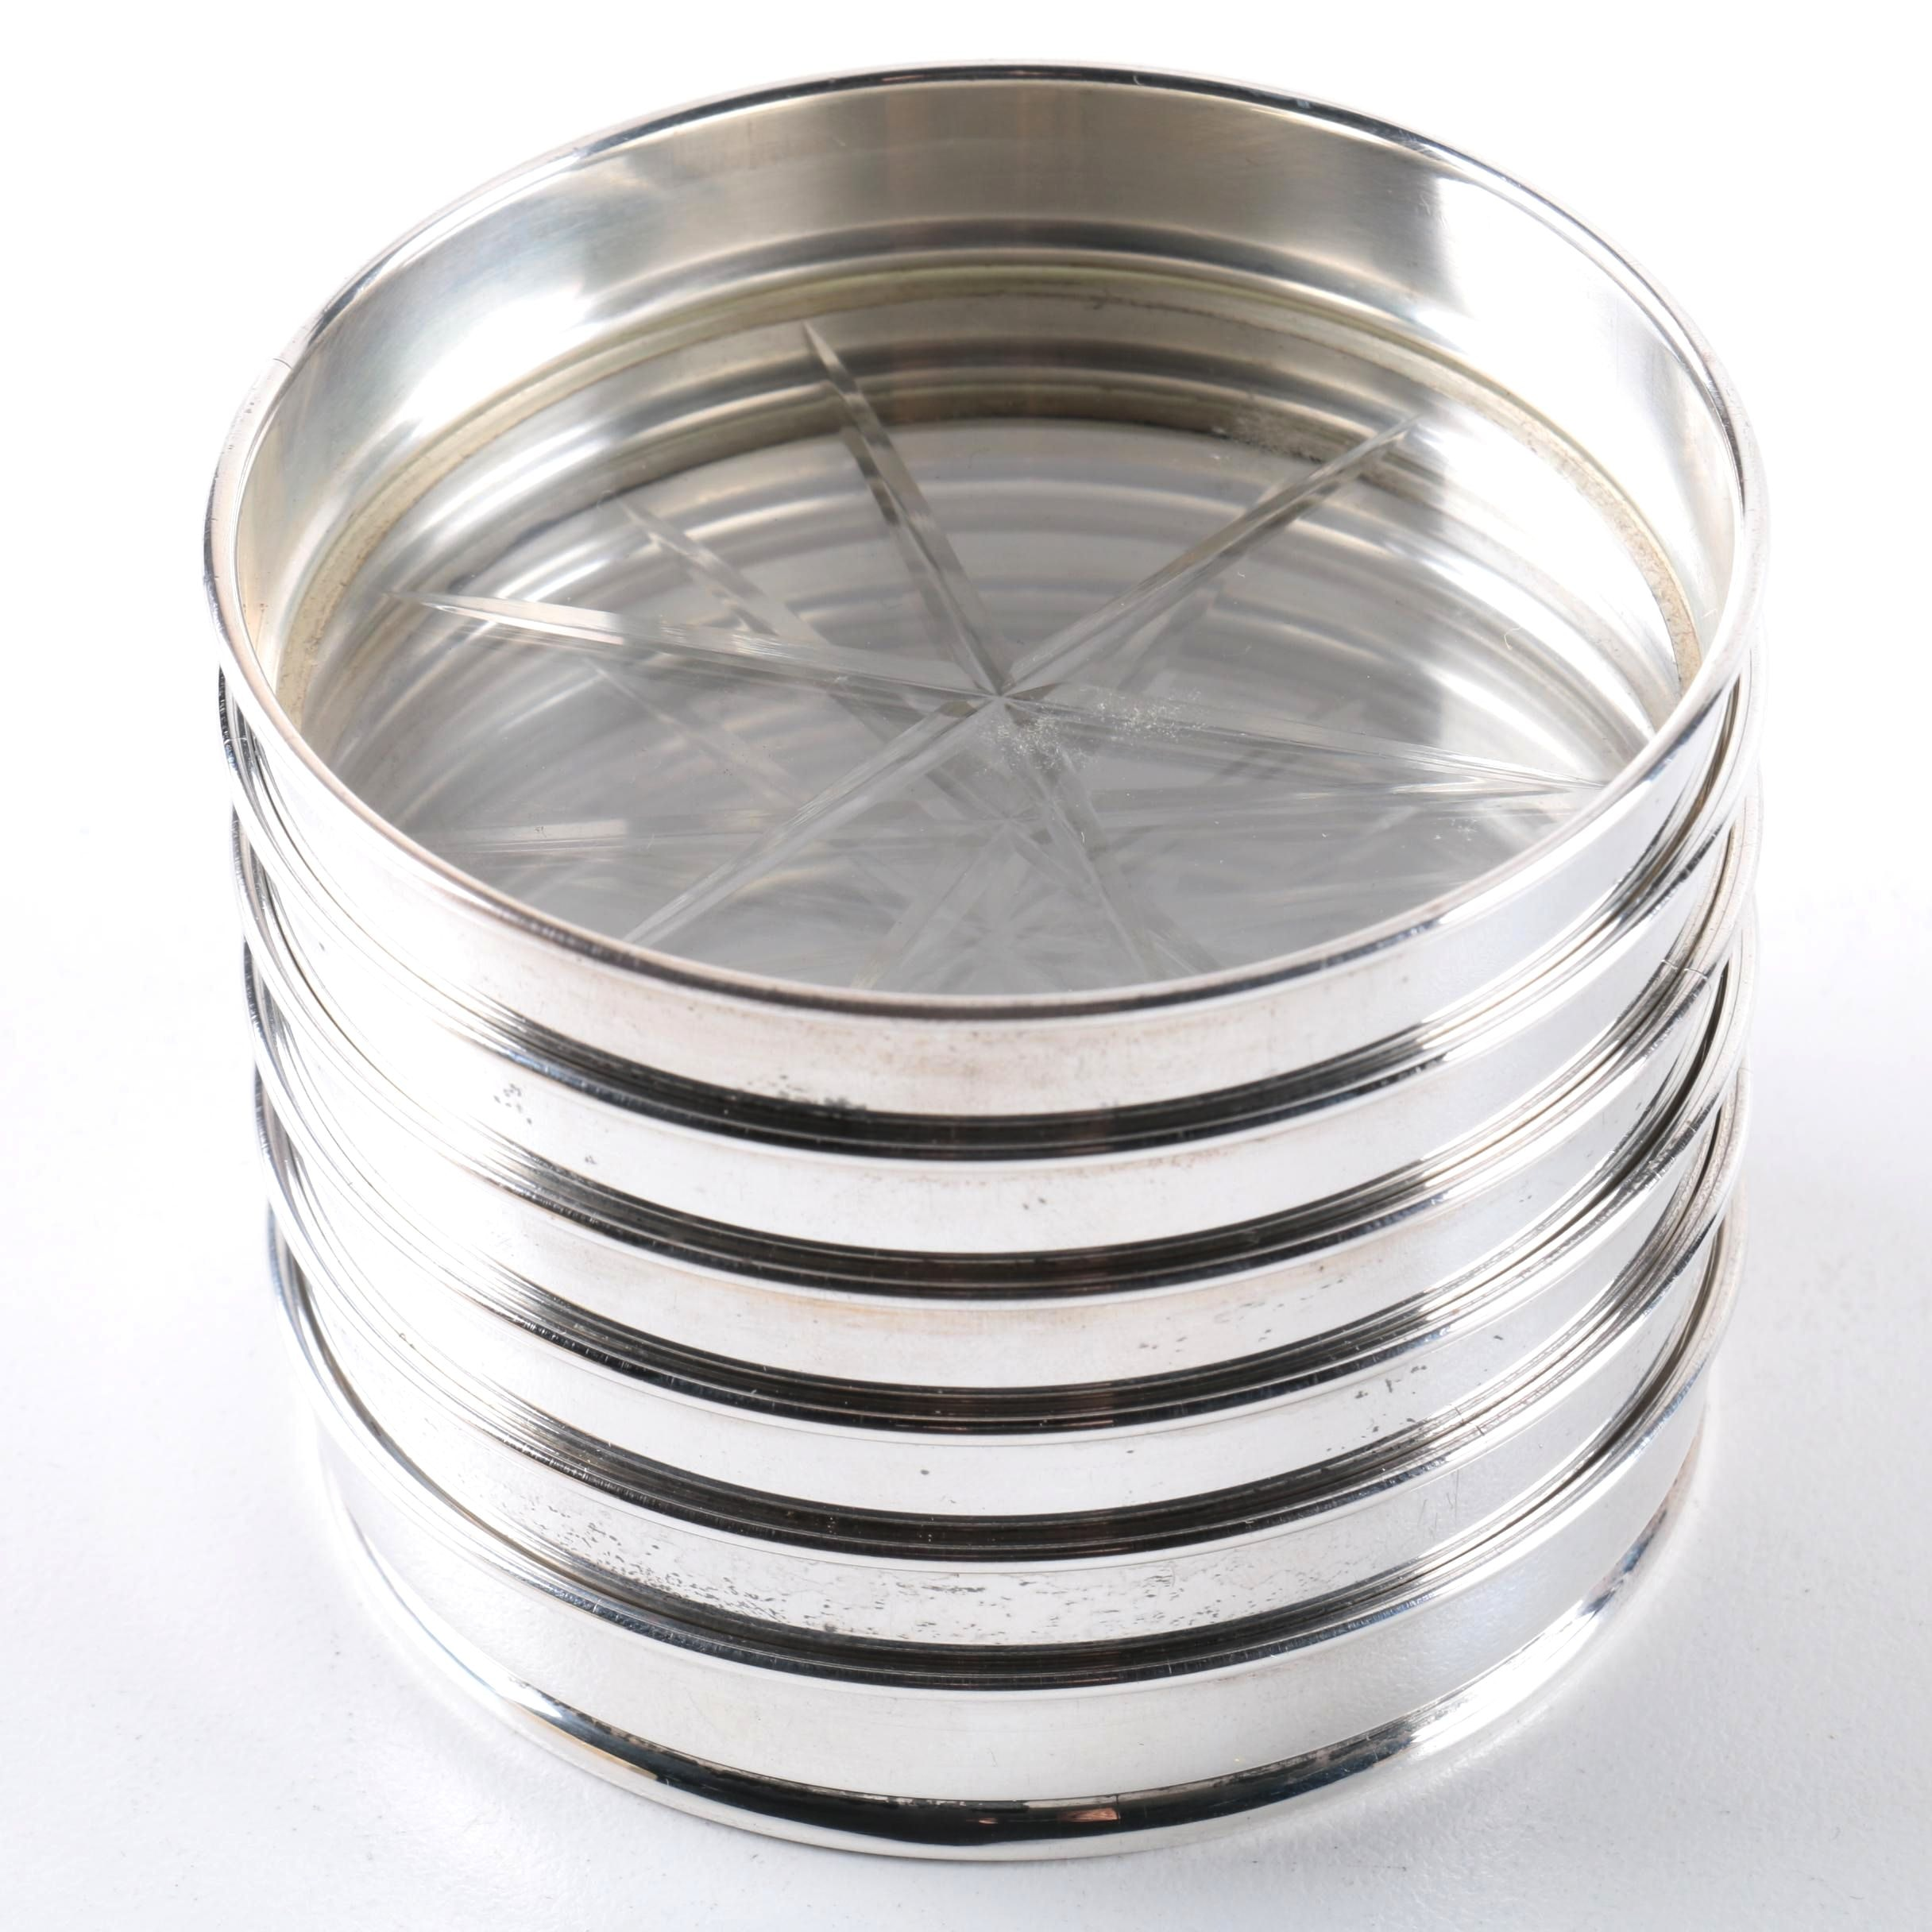 Gorham Glass and Sterling Silver Rimmed Coasters